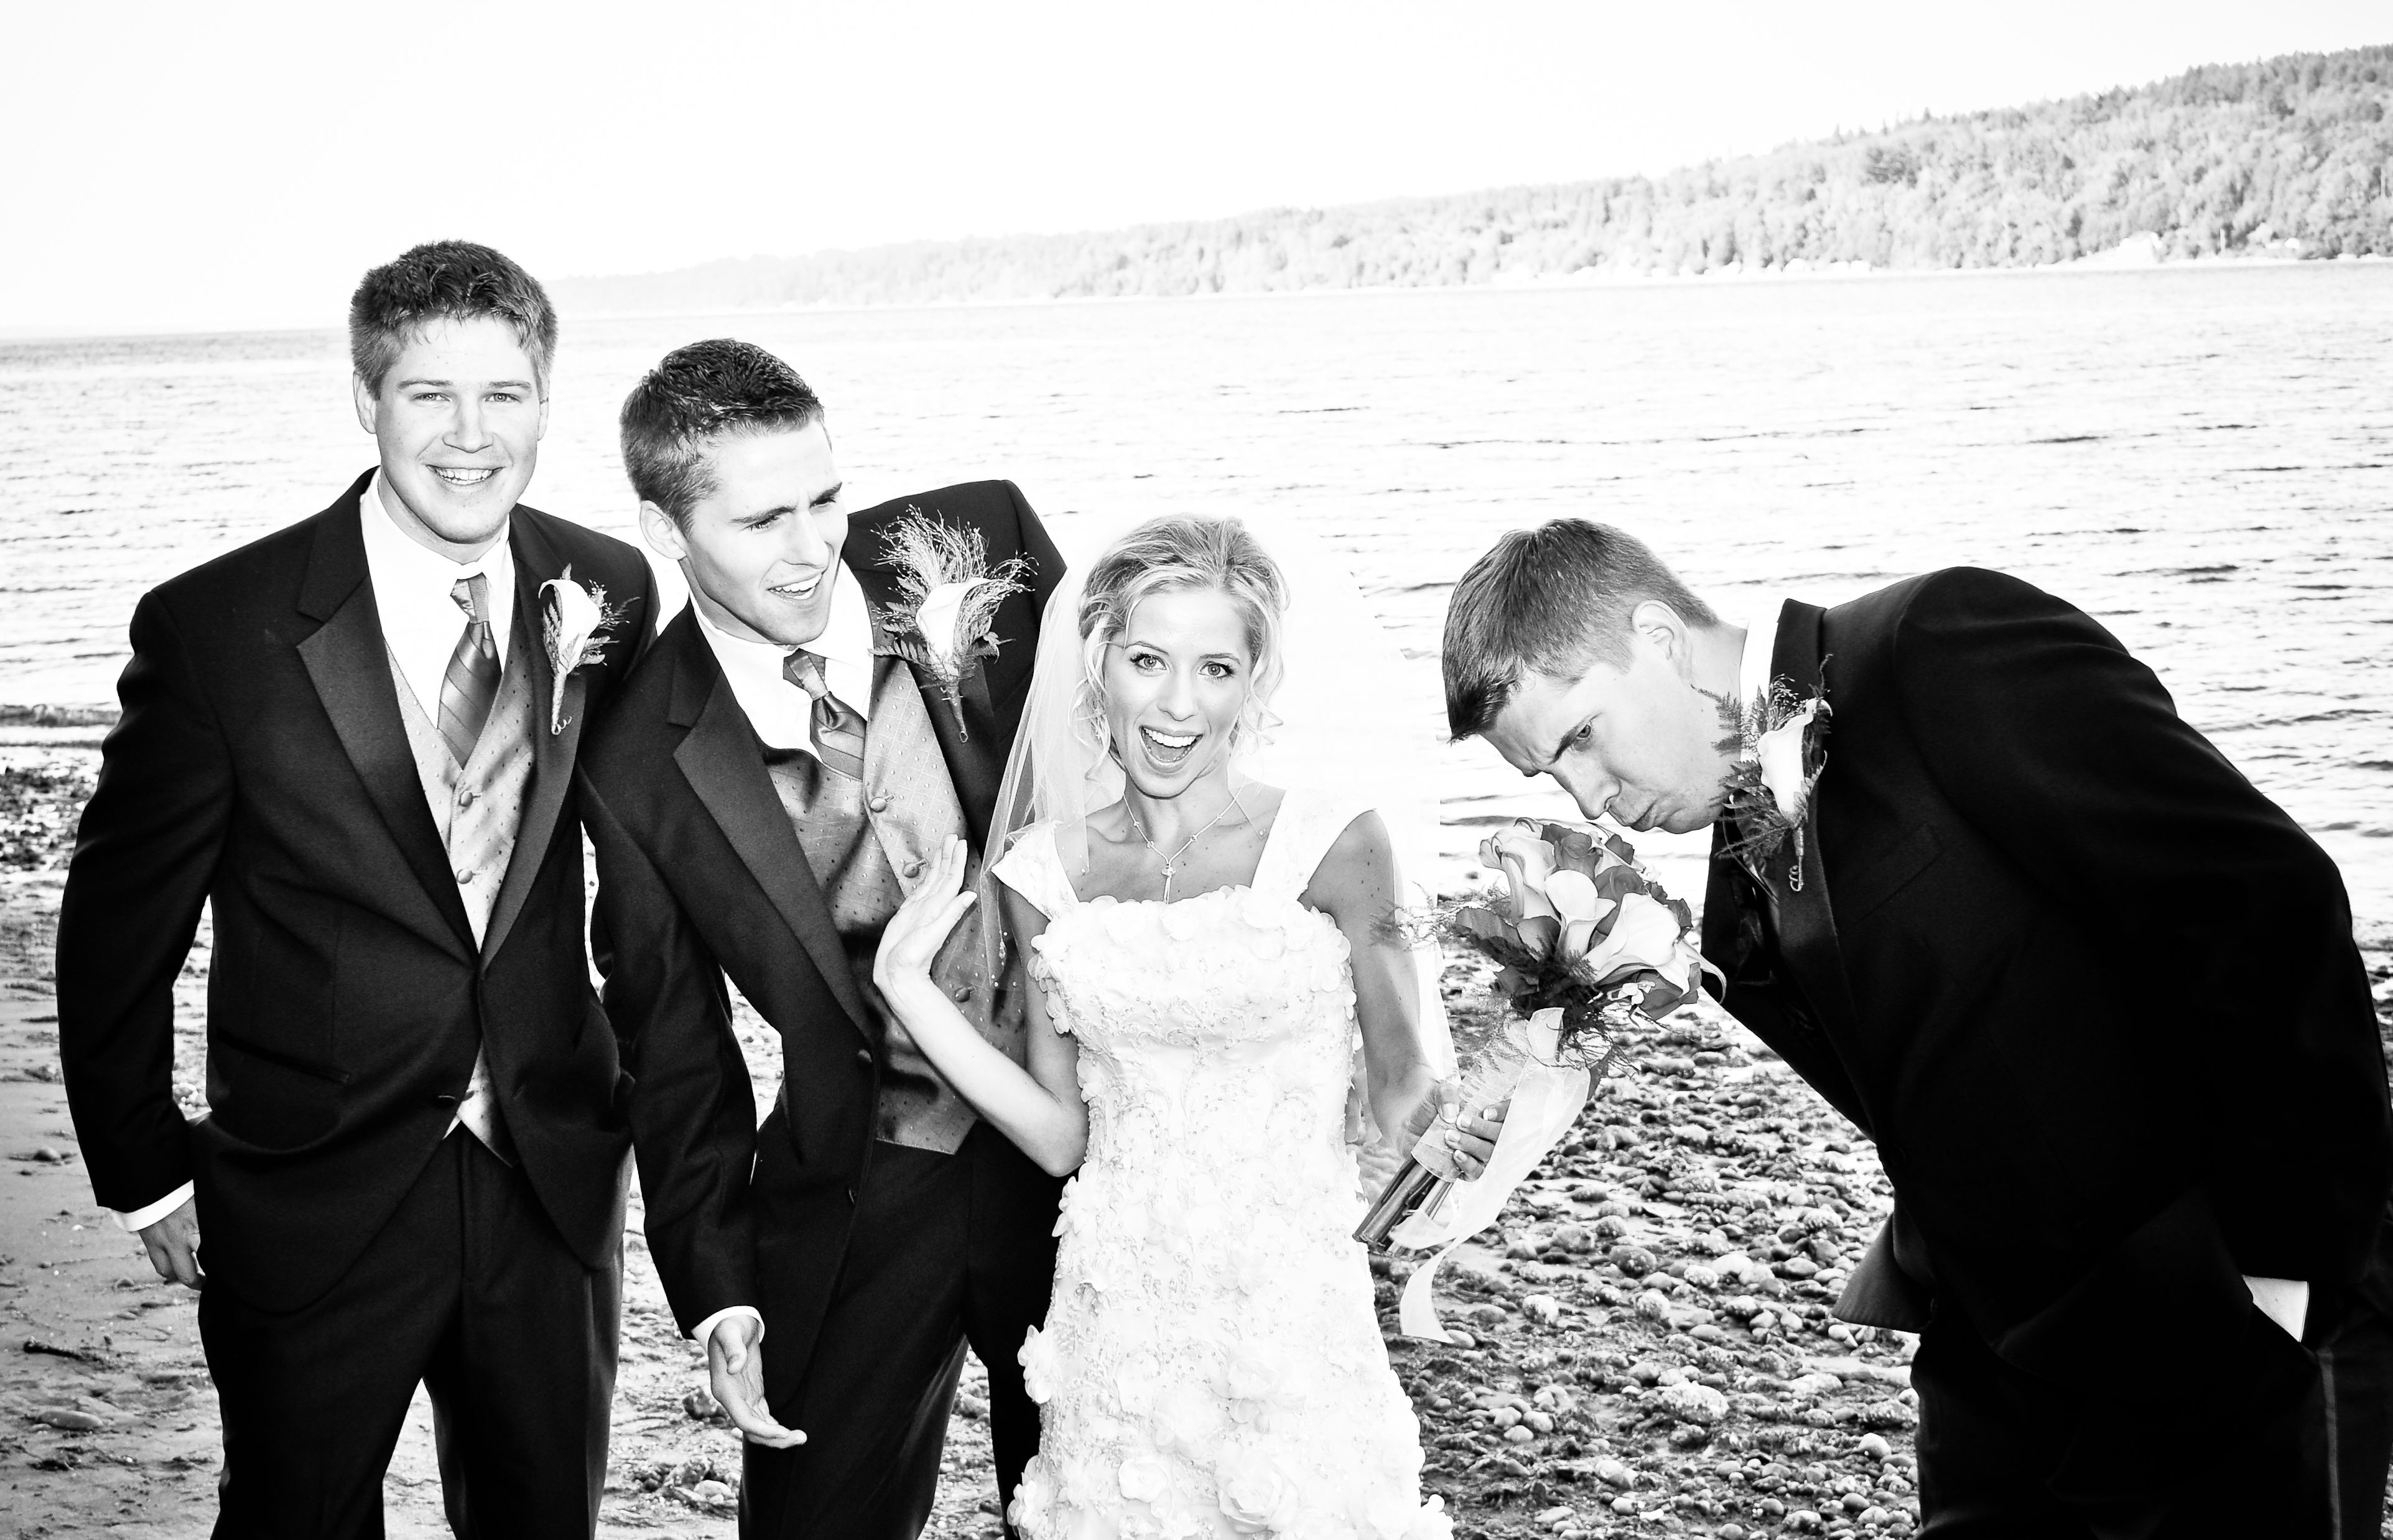 Cute!!   Wedding, Beachfront weddings, Places to get married